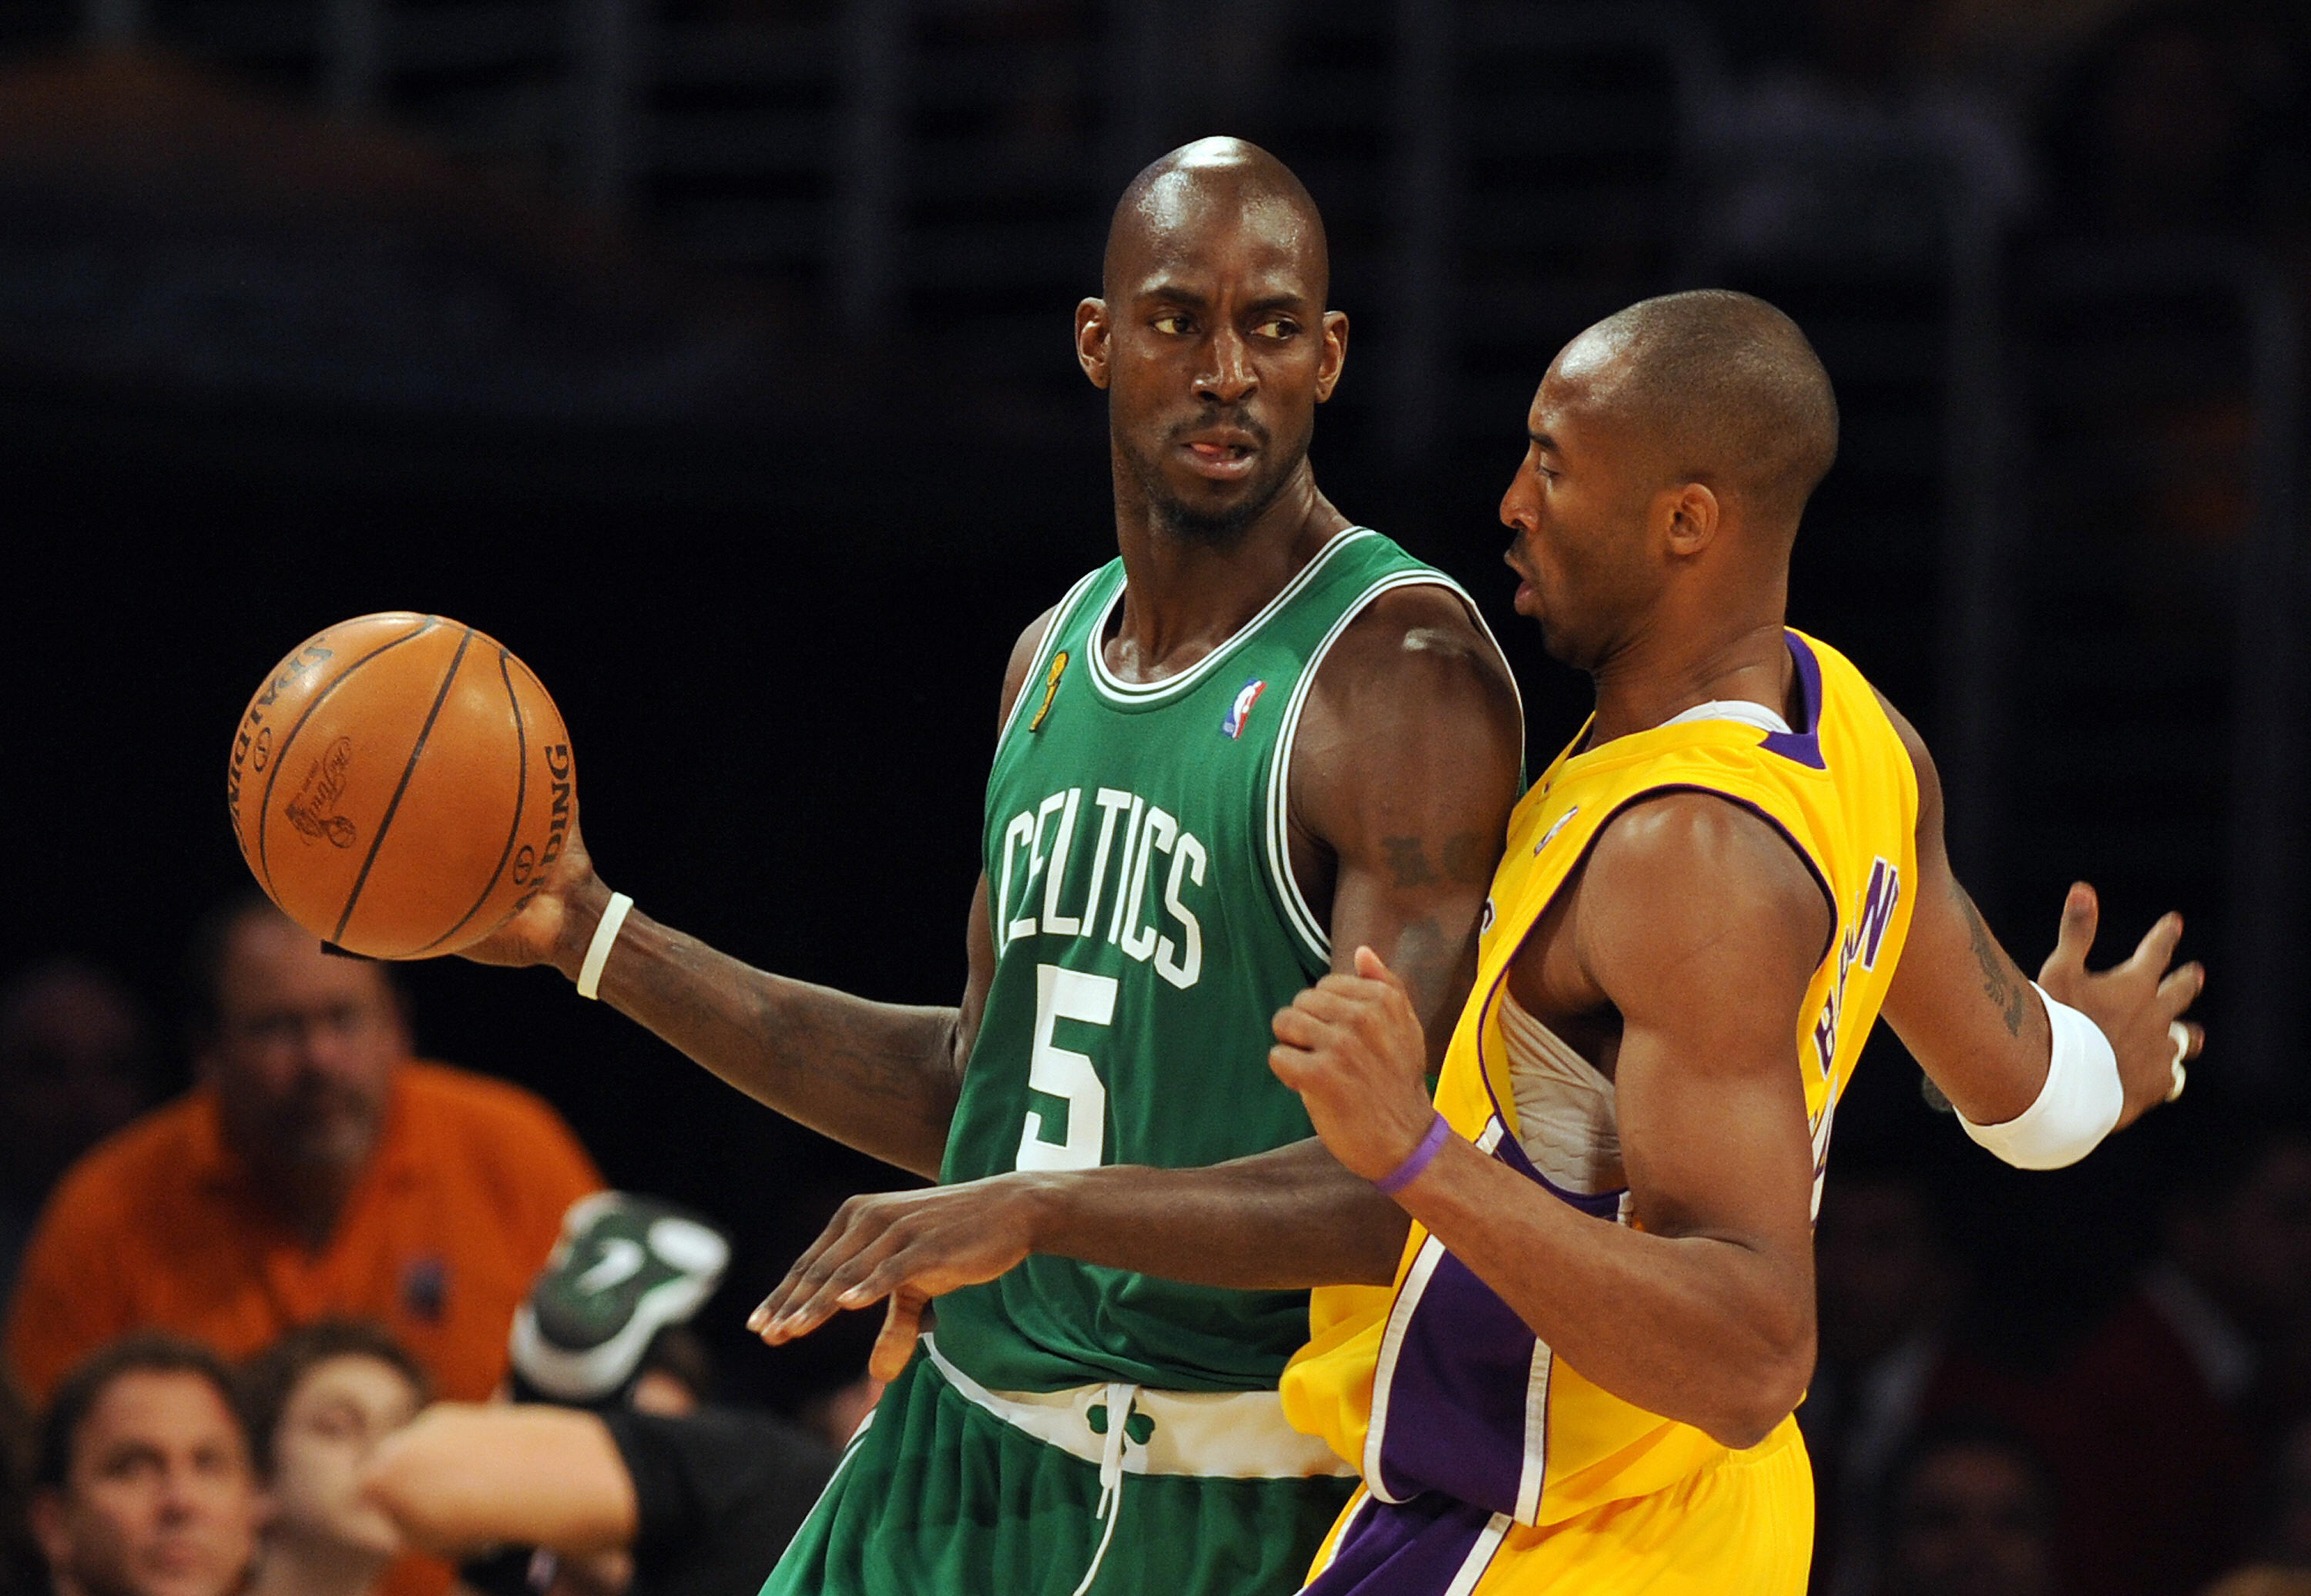 Kevin Garnett had a great relationship with Kobe Bryant despite being rivals on the court.